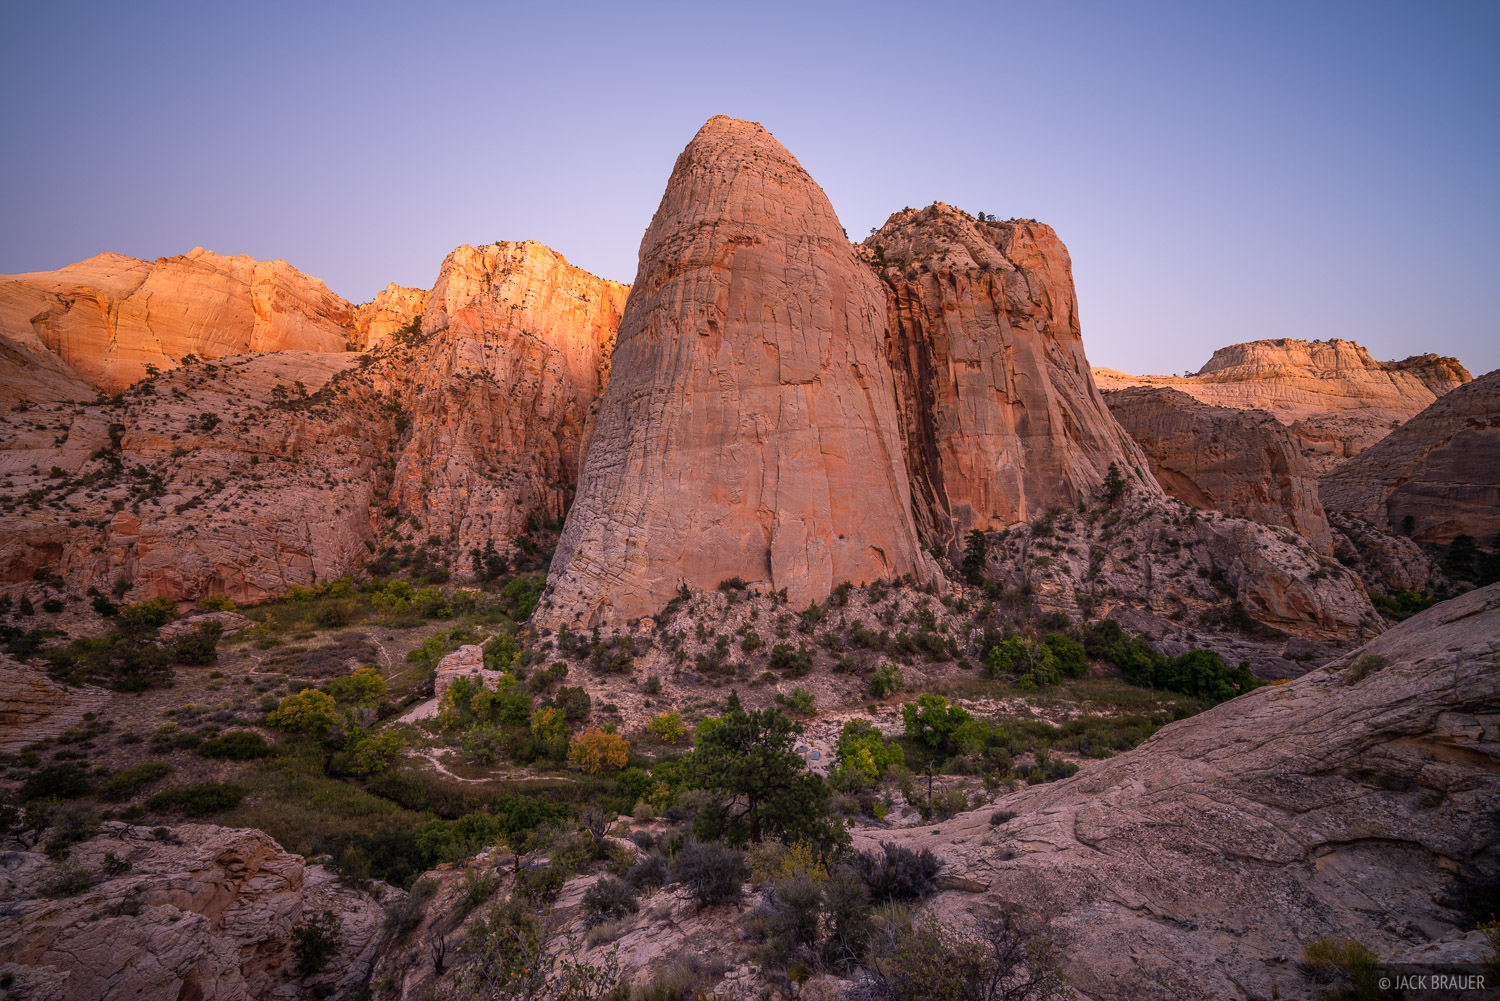 Huge sandstone walls in Death Hollow. The white sandstone glows a rich pinkish orange color in the dusk light after sunset.